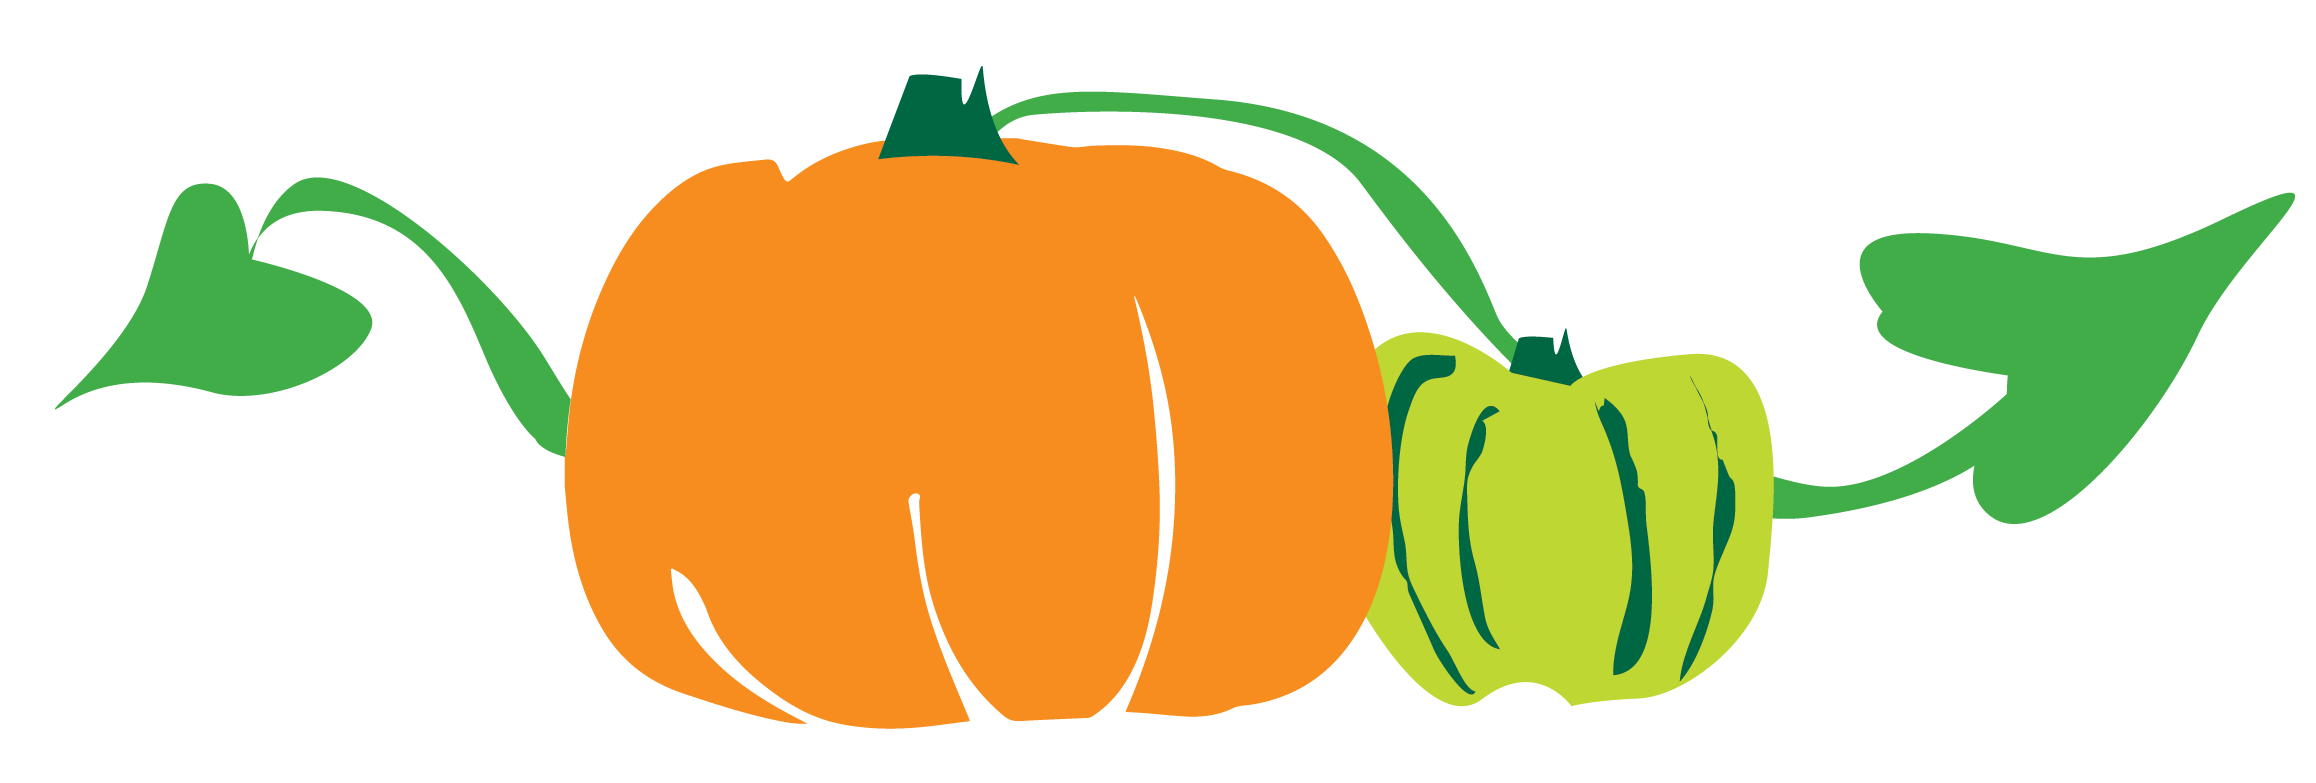 Pumpkin and gourd clipart vector transparent download Pumpkin Tours (October) vector transparent download